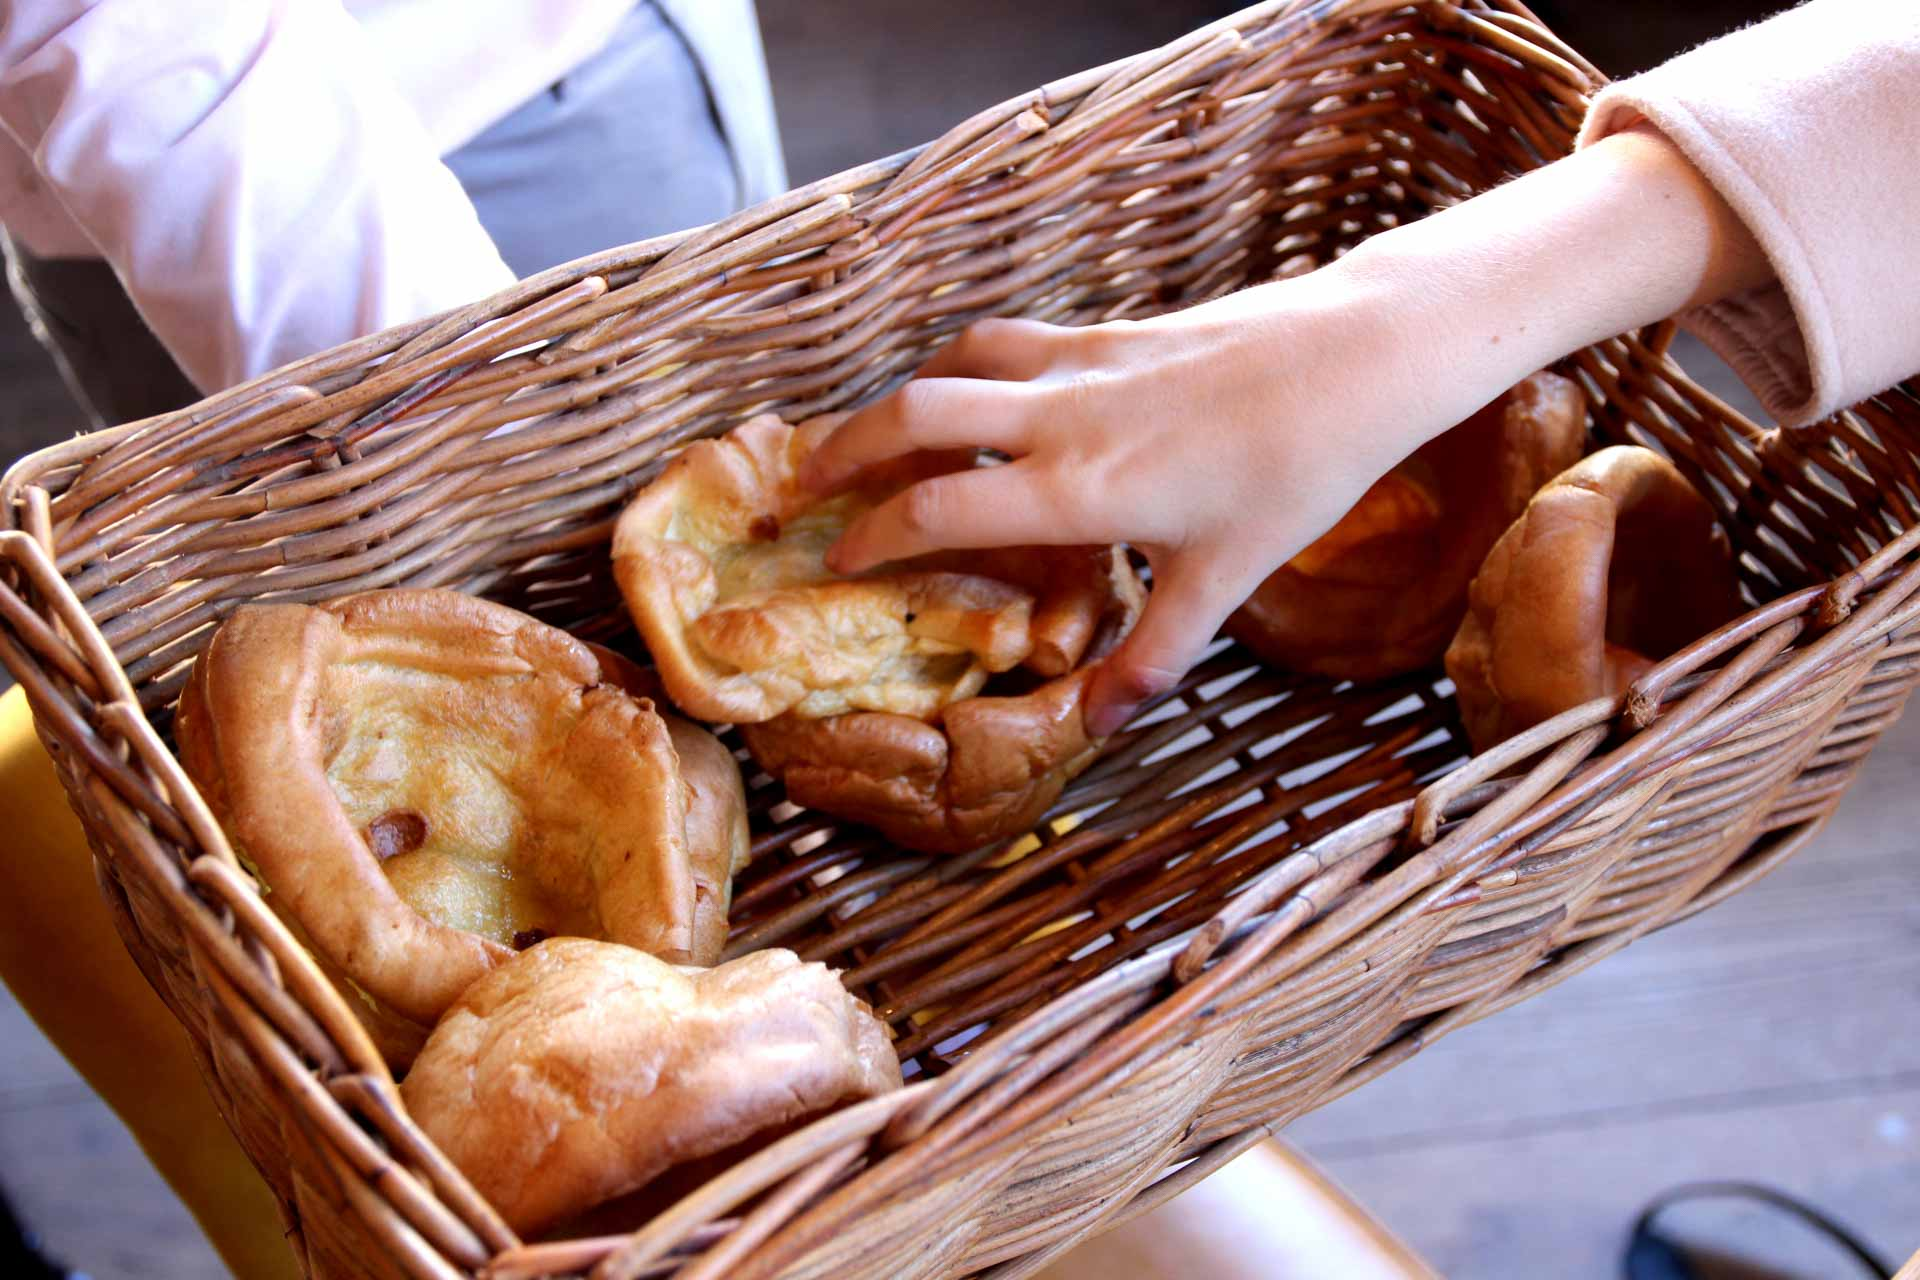 yorkshire puddings at the northcote hotel